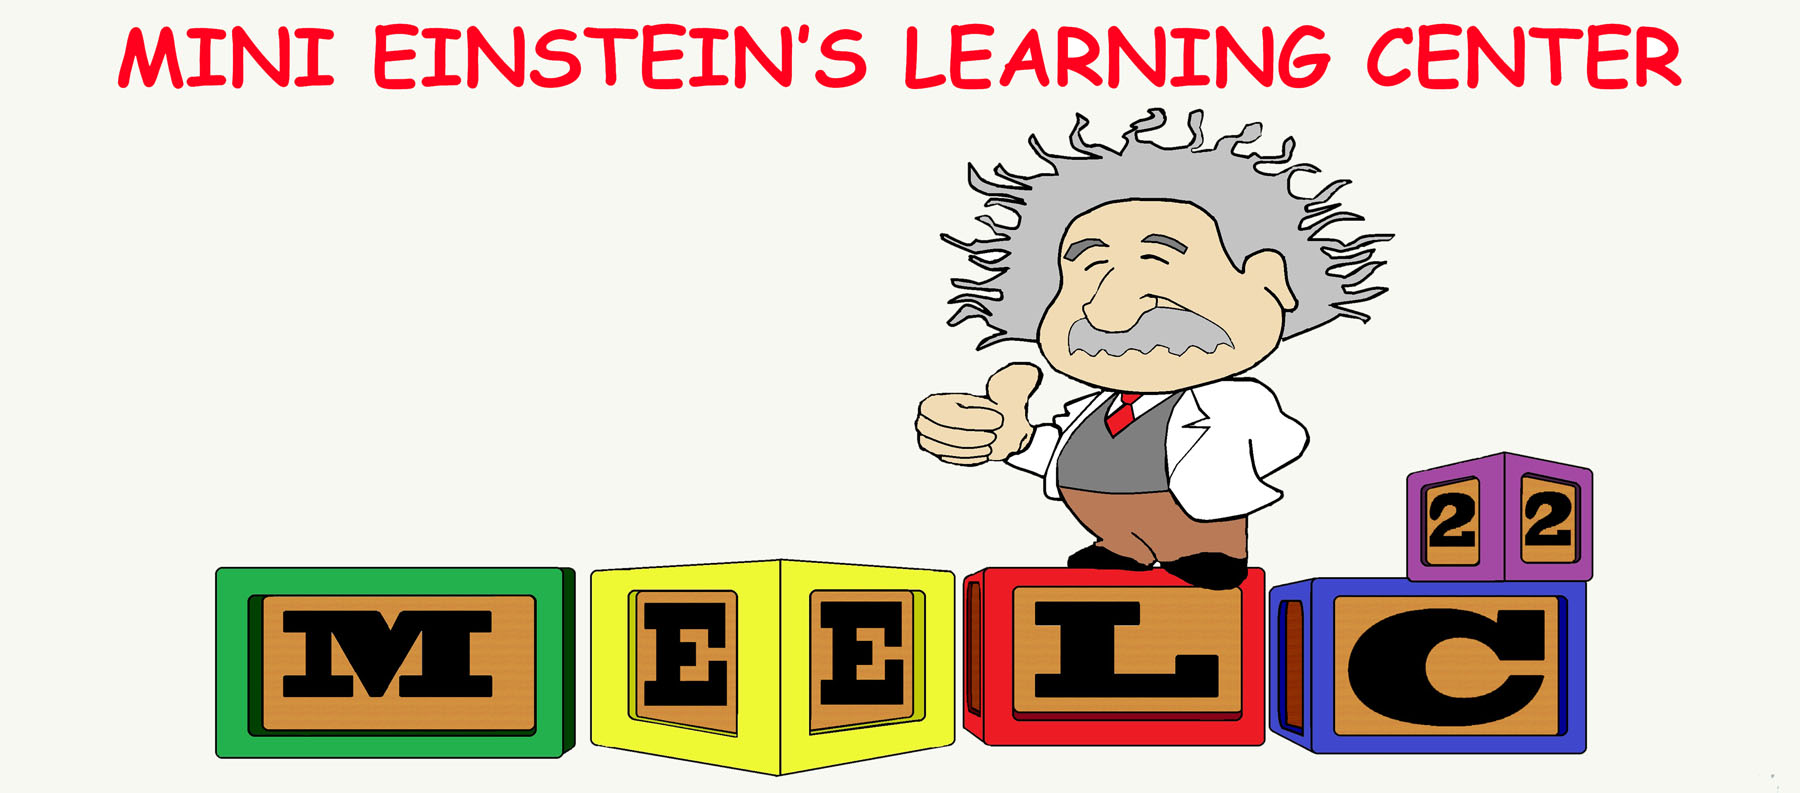 Mini Einstein's Learning Center